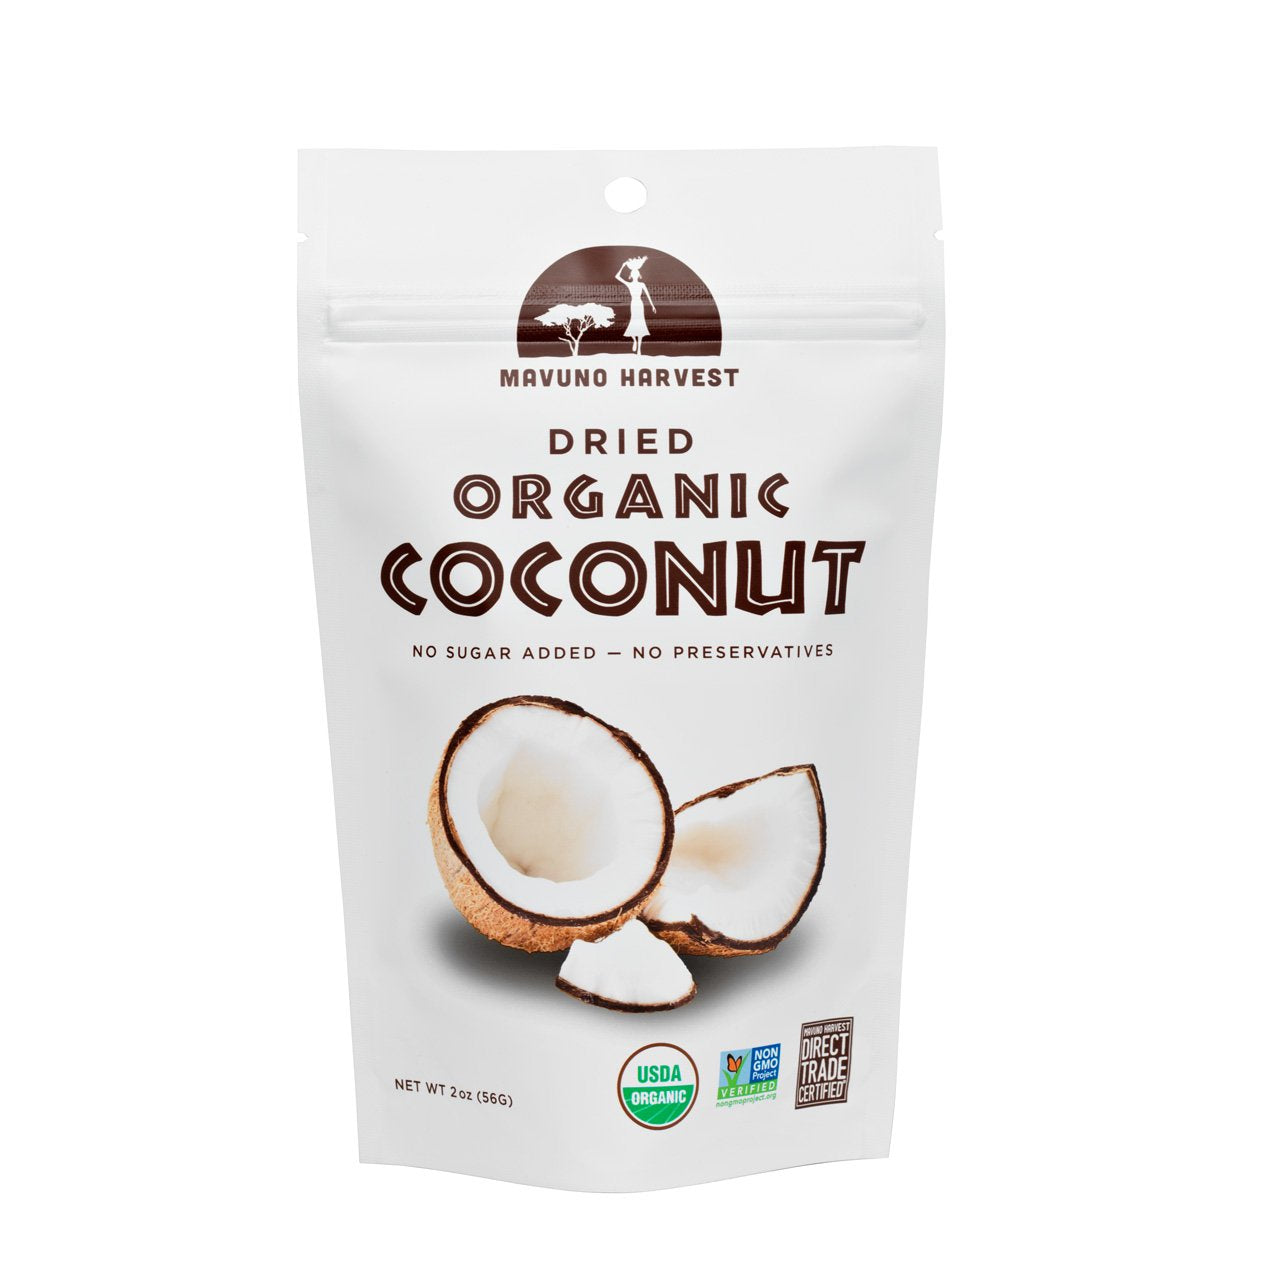 Mavuno Harvest Dried Organic Coconut, 2 oz. (Case of 6)